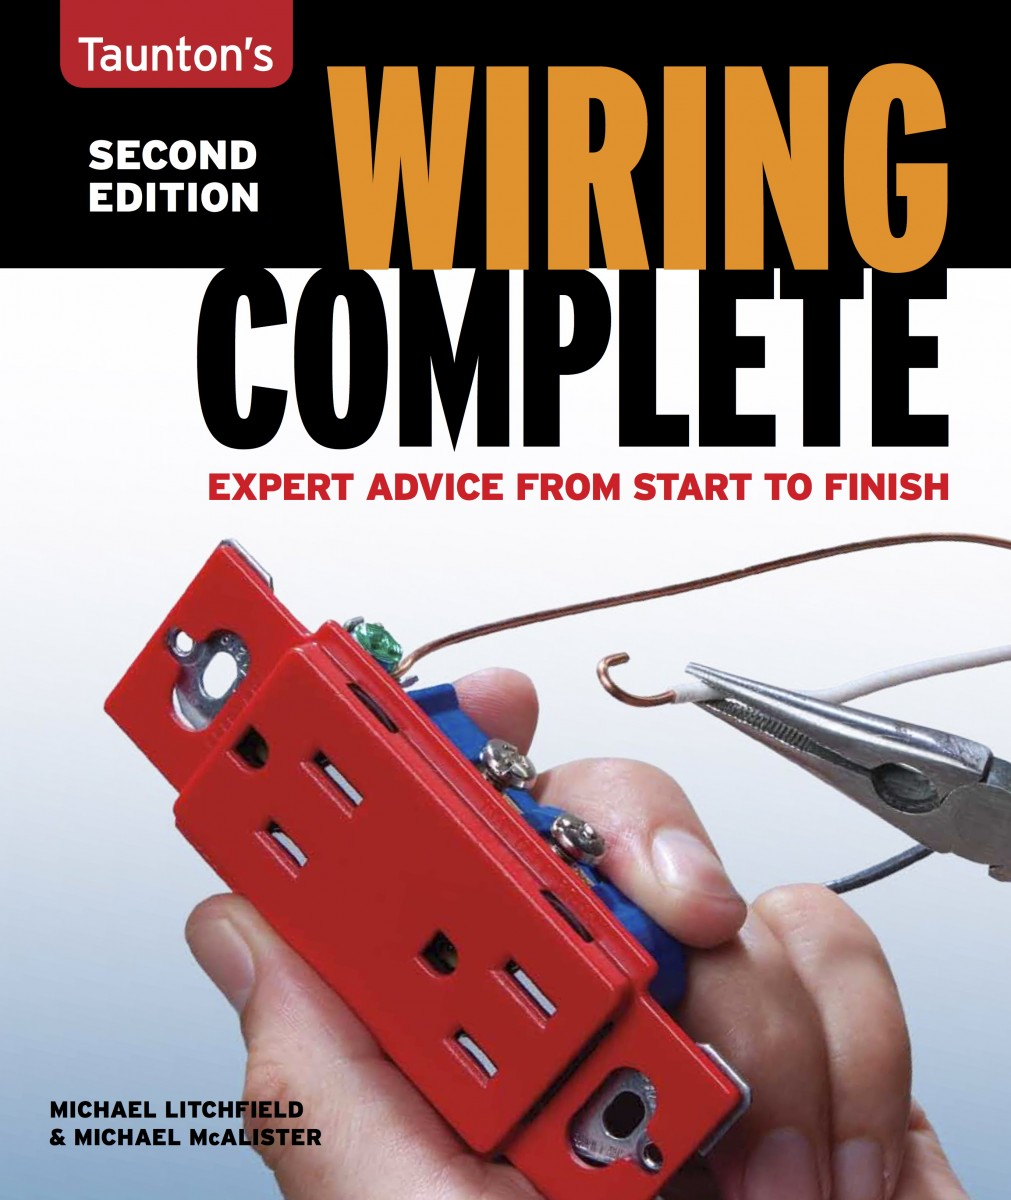 Converting An Incandescent Ceiling Can To Led Fine Homebuilding Wiring House For Complete 2 Has 800 Photos 50 Detailed Schematics And Covers Installing Advanced Components Such As Wireless Switches Conversion Kits